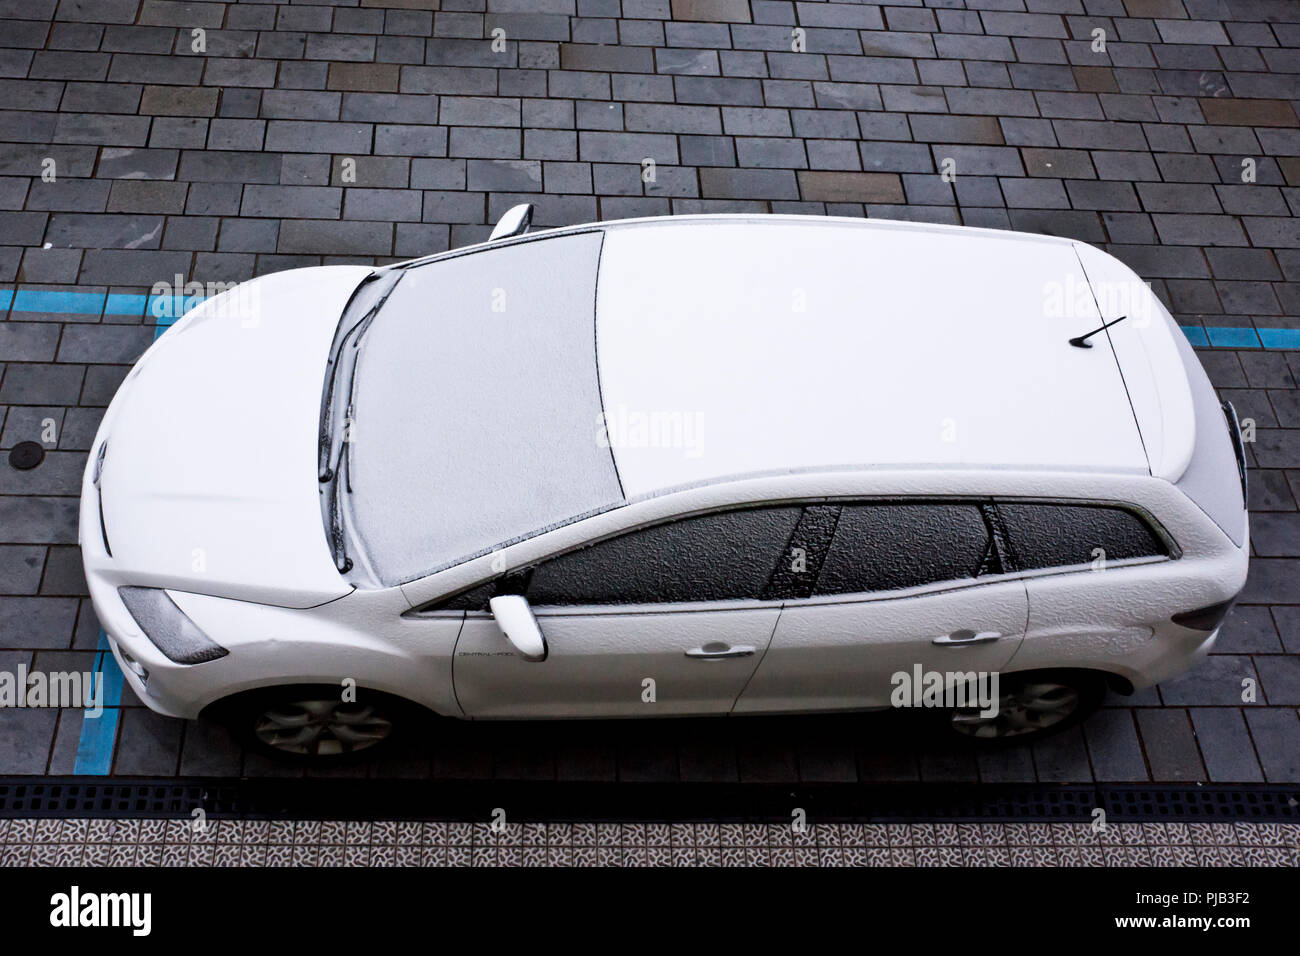 car parked on the street and covered with snow - Stock Image